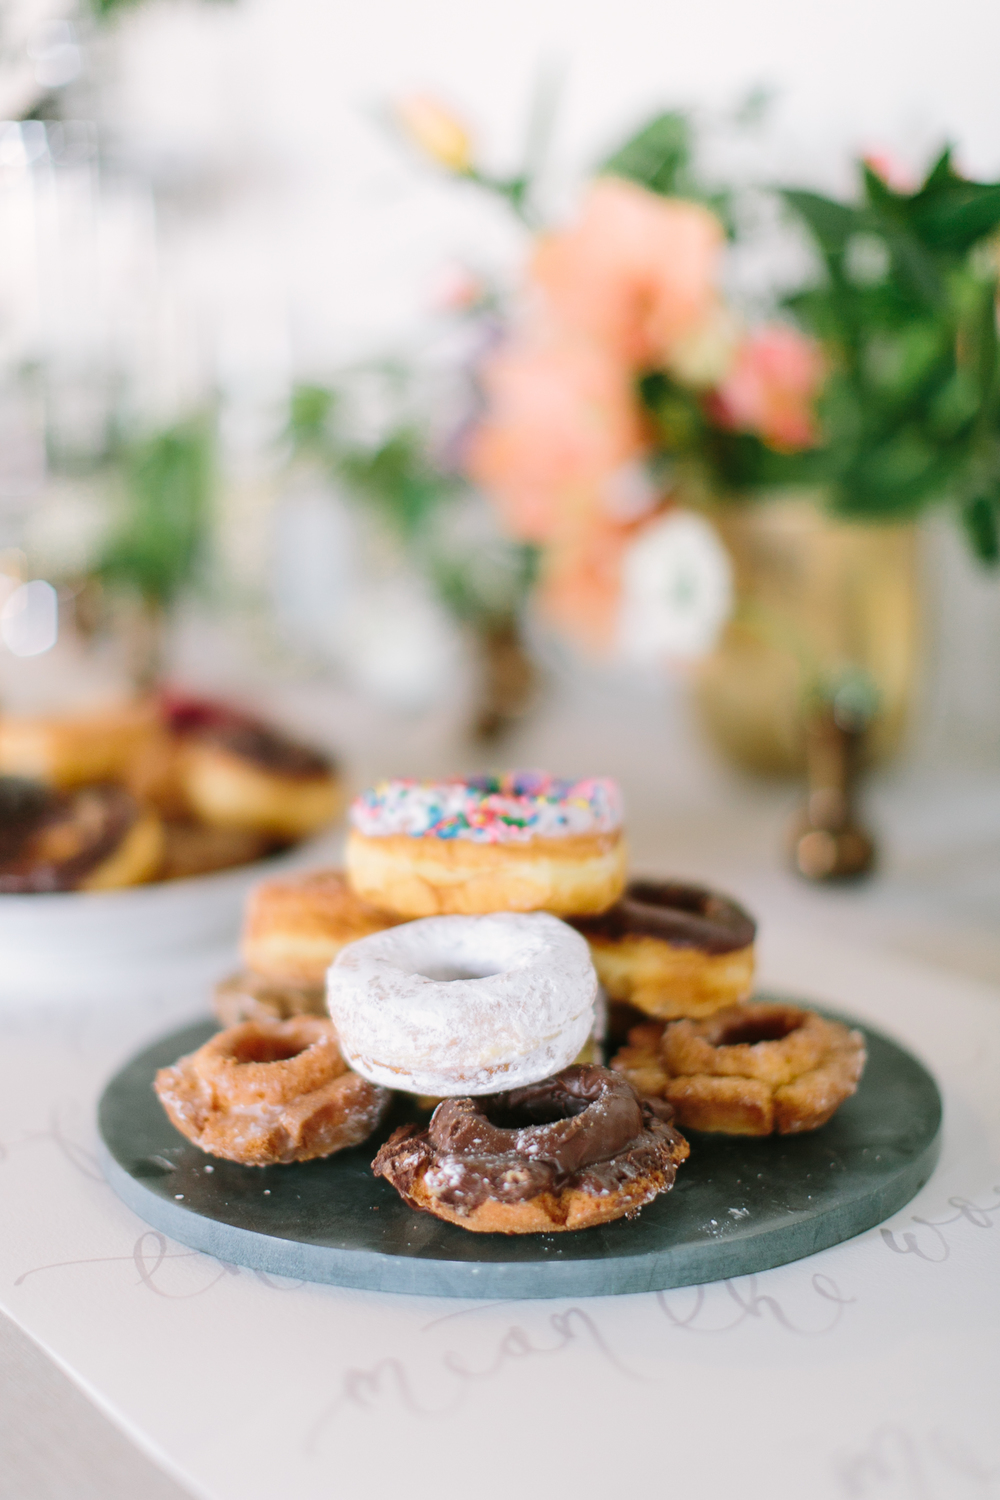 Donut bar-food styling-food photography-donuts-florals-centerpiece-dessert table-breakfast bar-